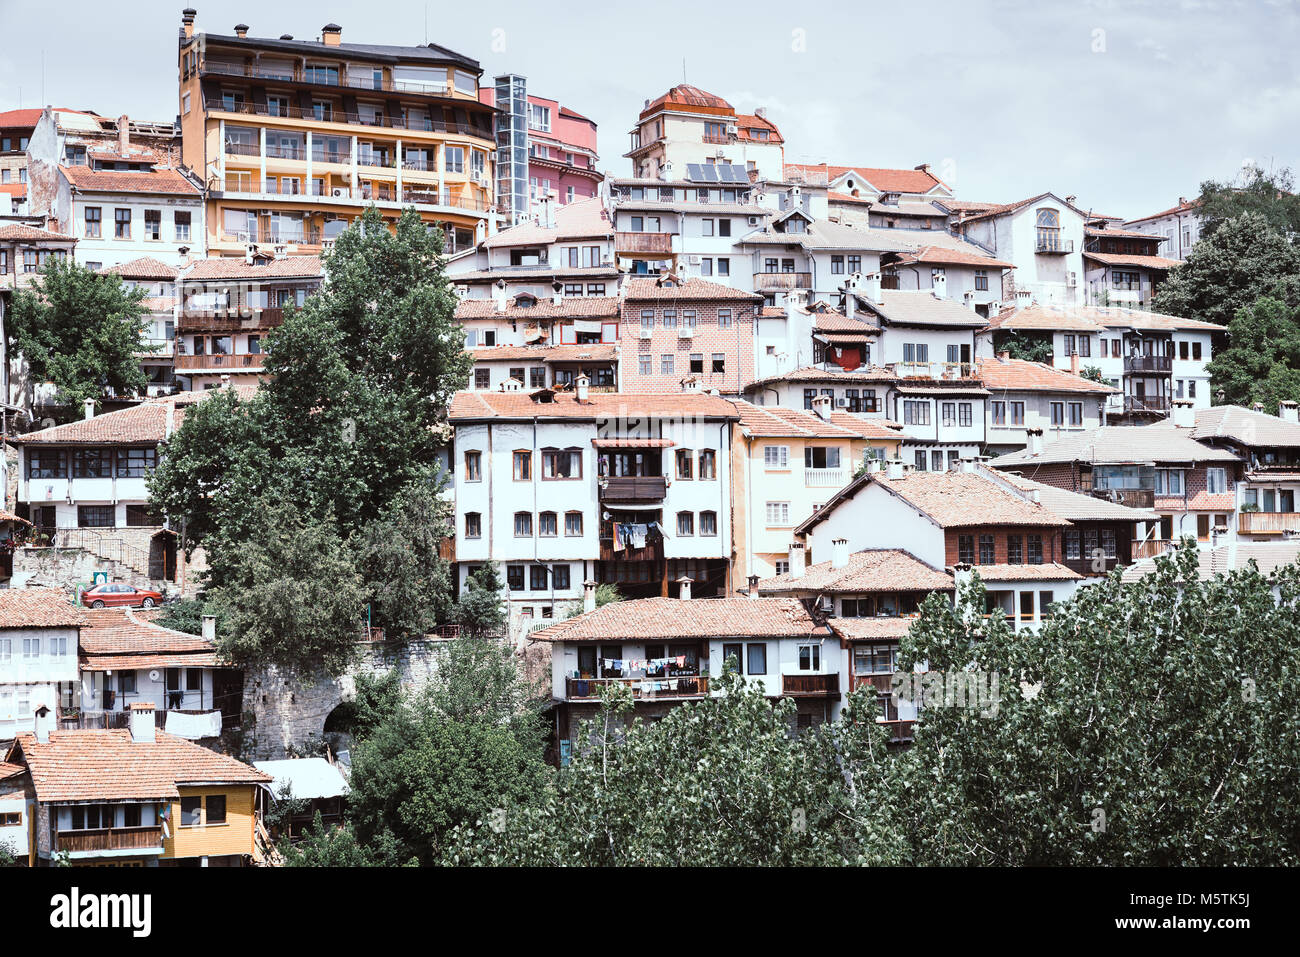 Residential area in the city of Veliko Tarnovo, Bulgaria Stock Photo